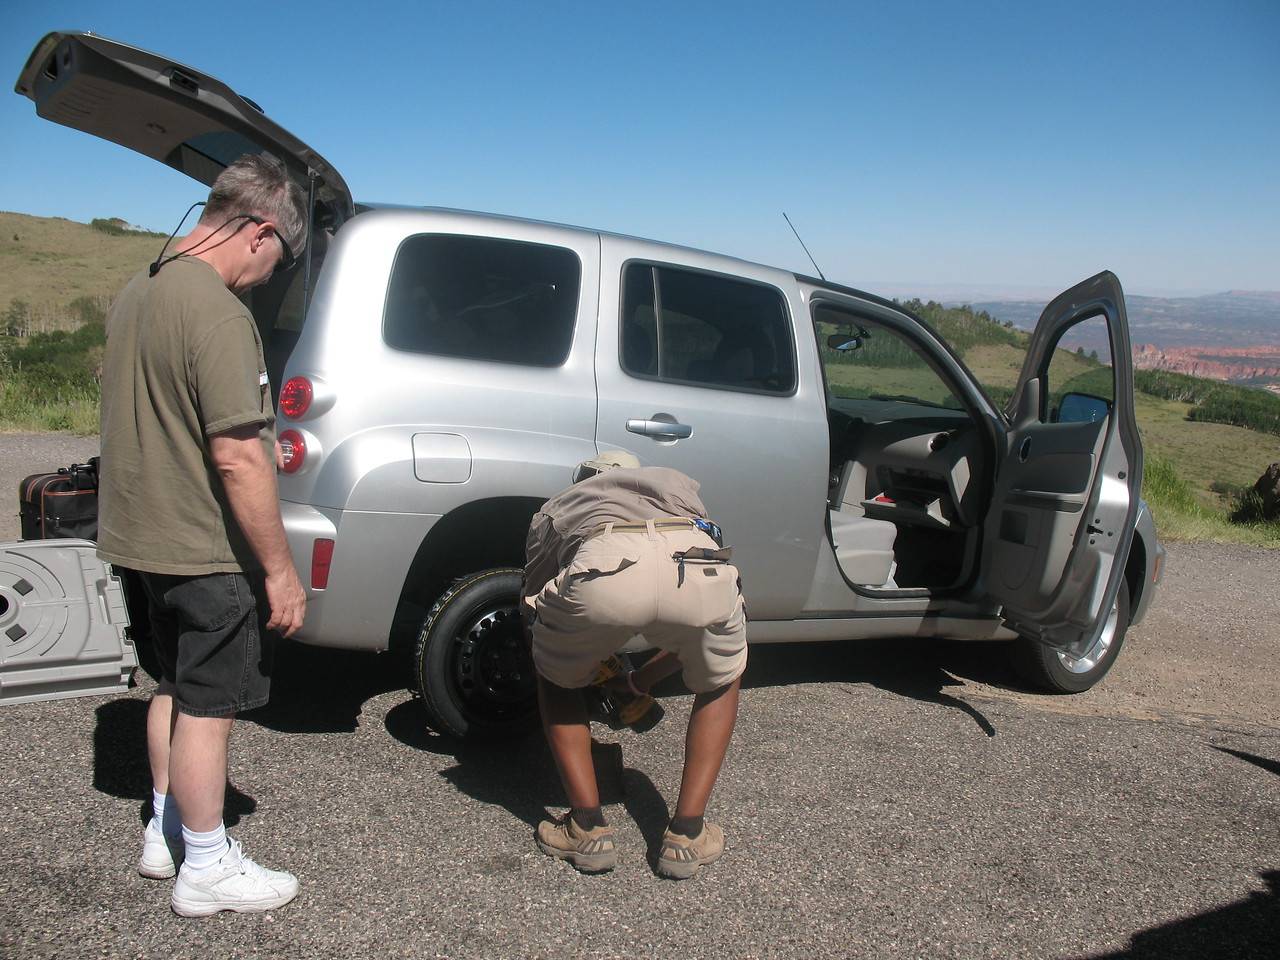 Here I'm tigthening the lugs on the spare.